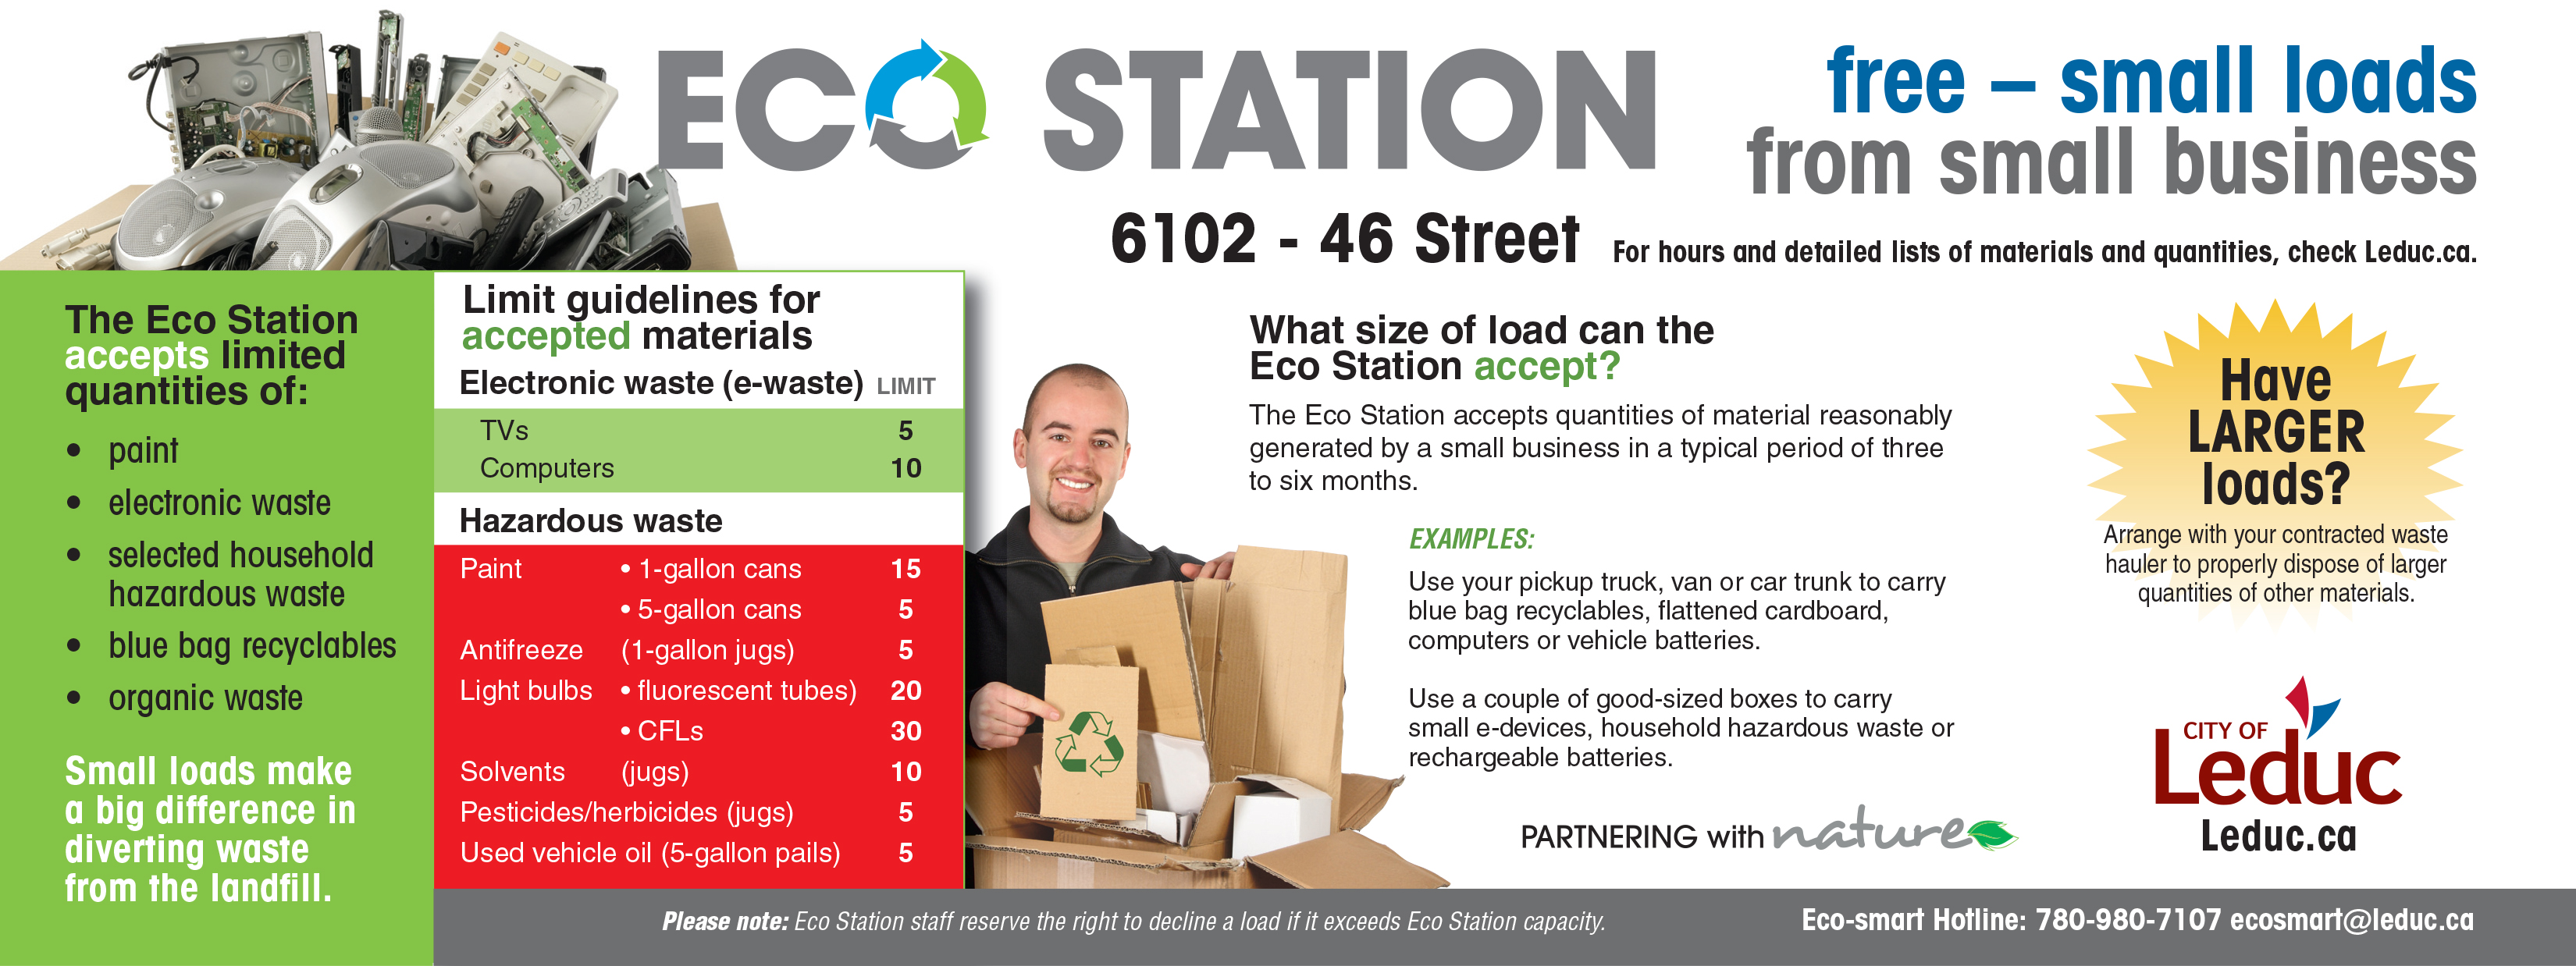 Eco Station for Business 2017